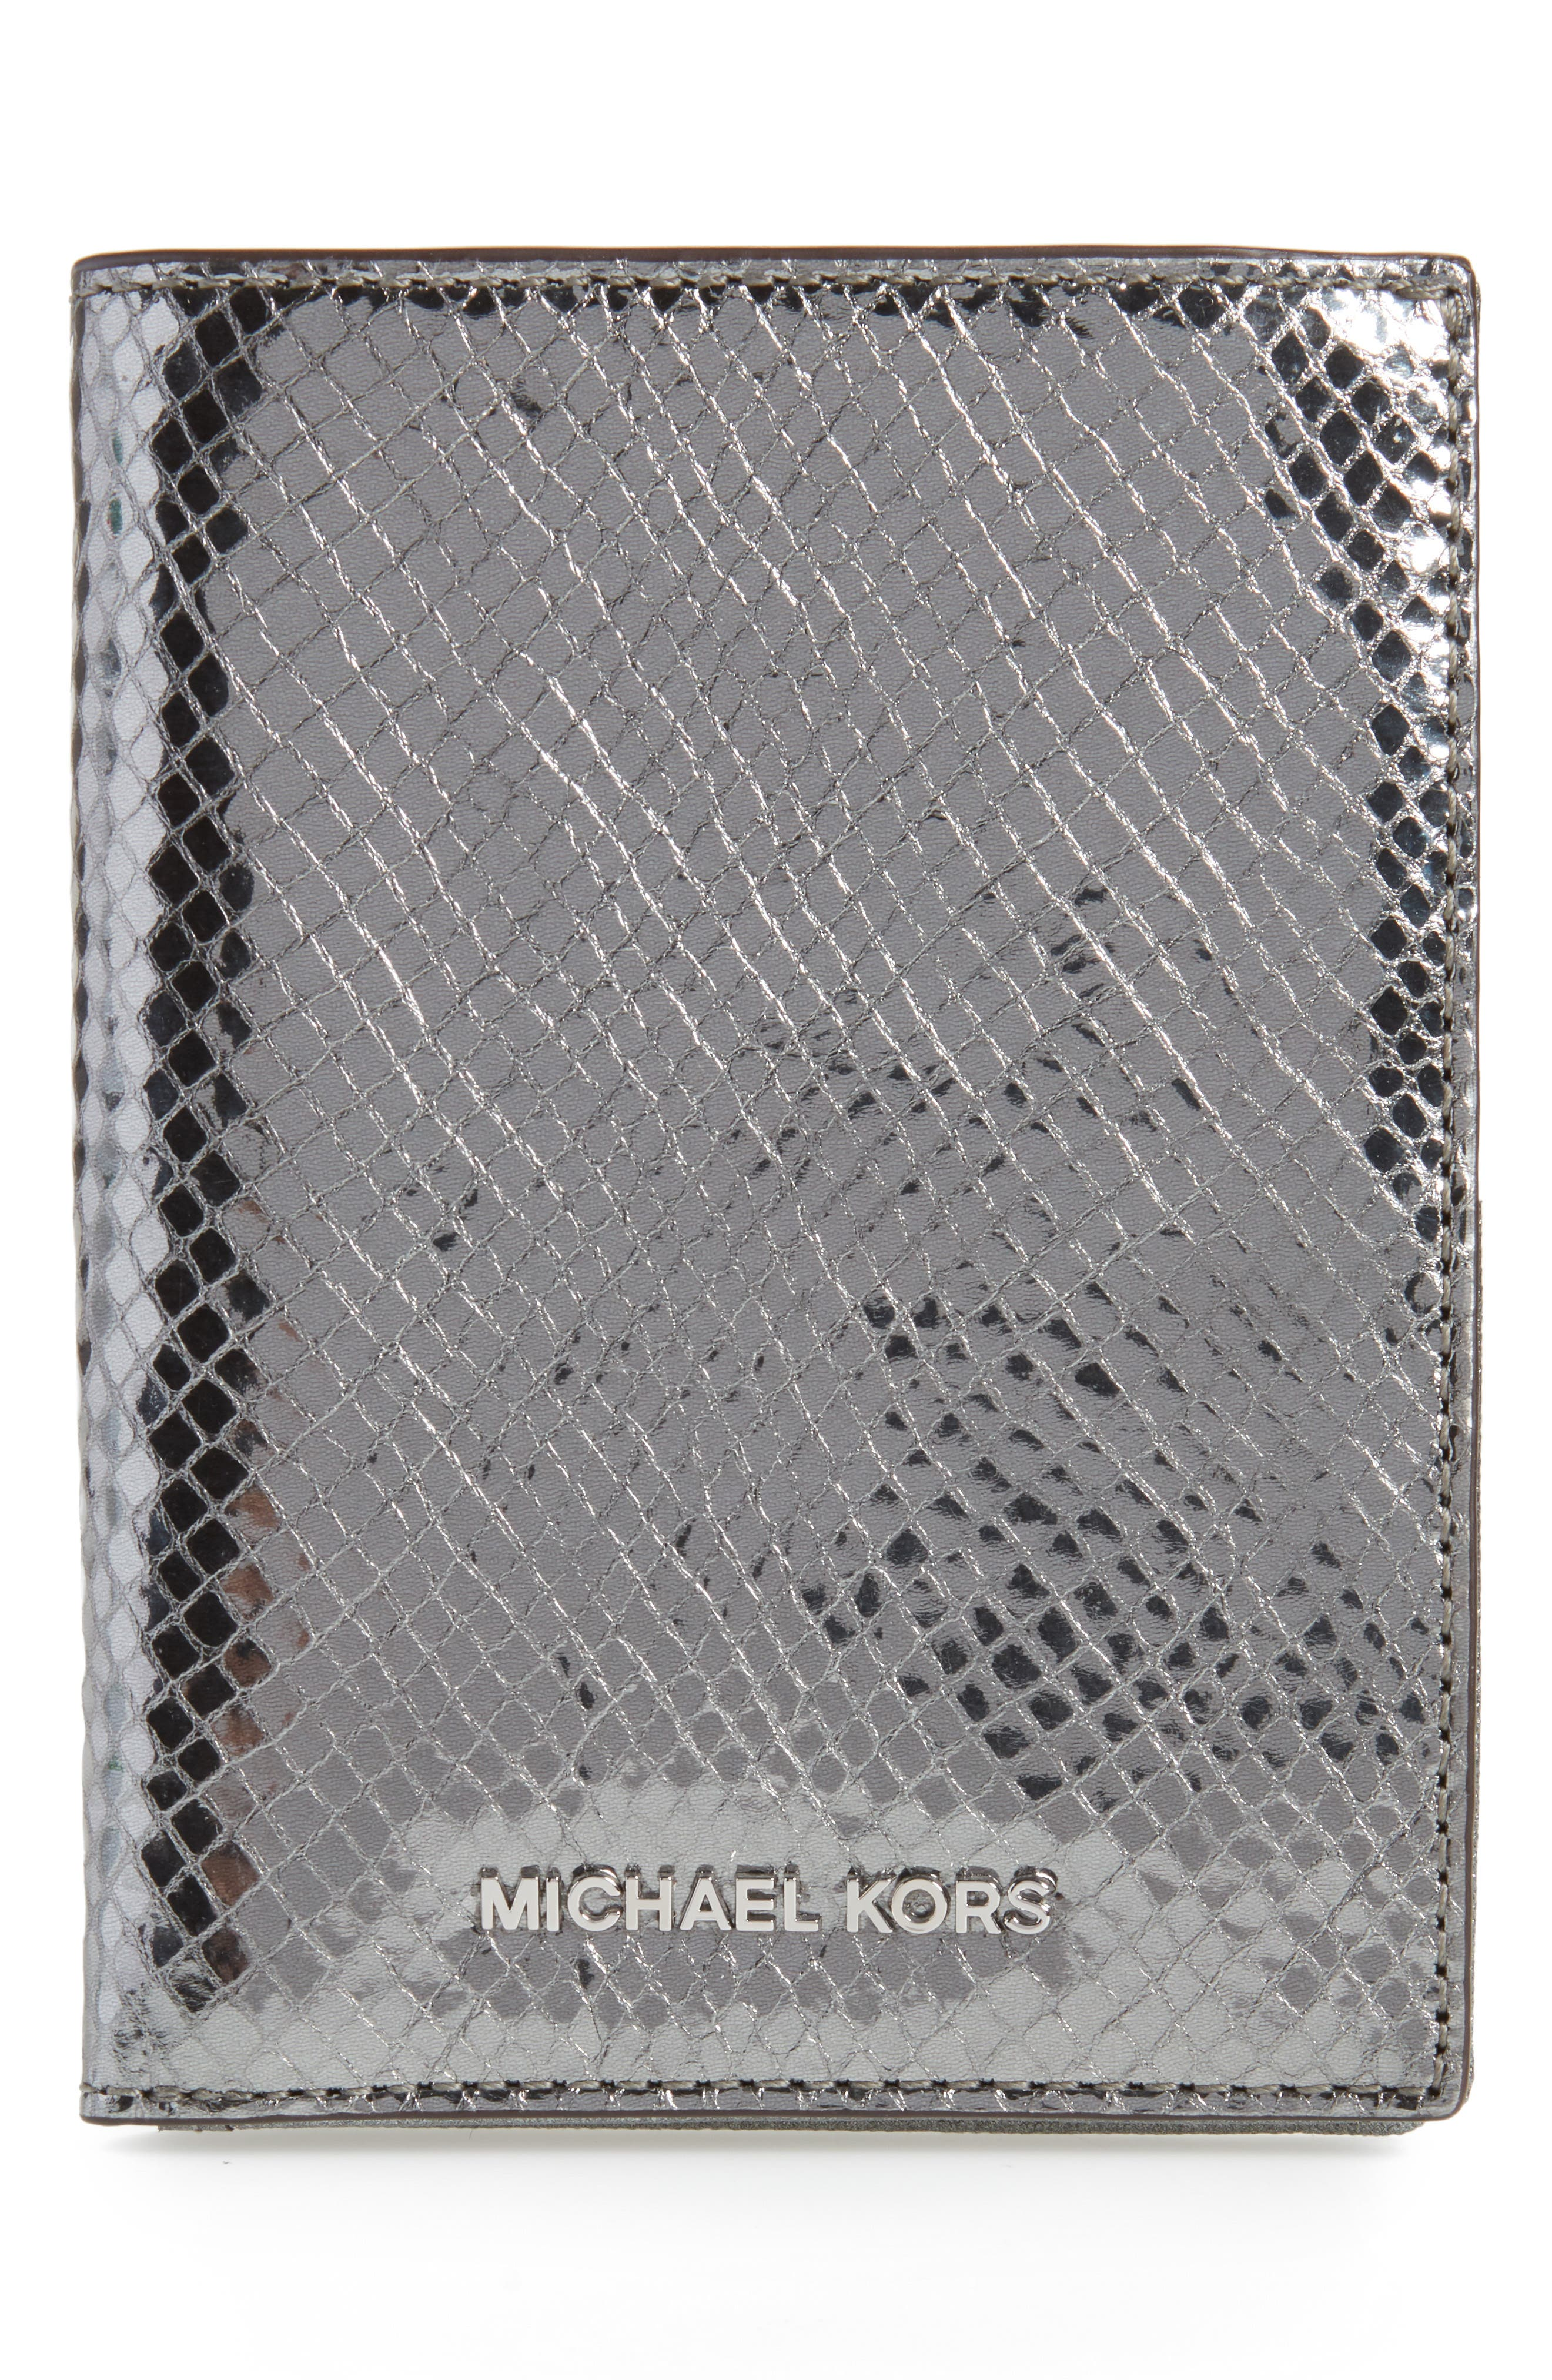 Michael Kors Money Pieces Leather Passport Wallet